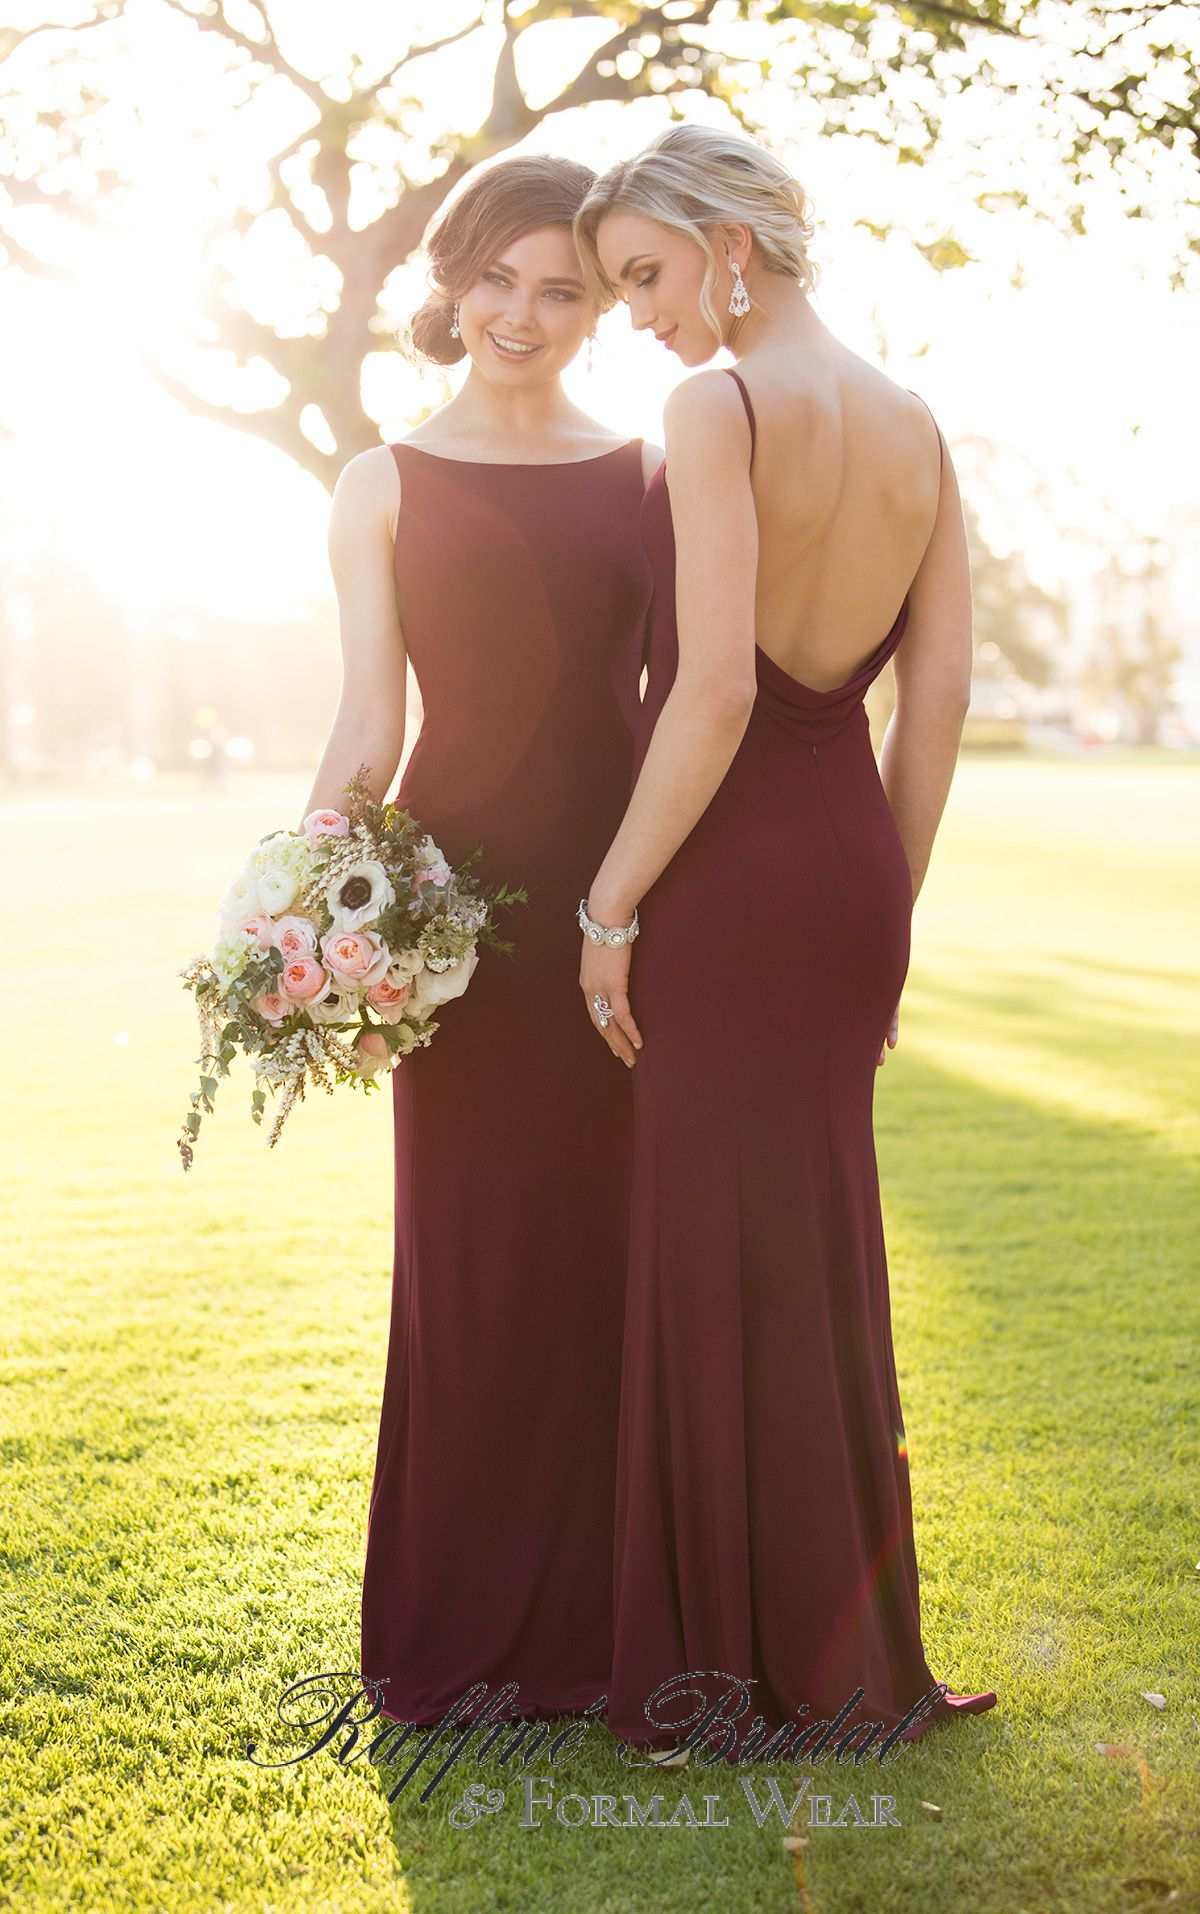 59deaf5fd91 Sorella Vita  8880 - This bridesmaid style features a high neckline and  sheath modest fit. In contrast